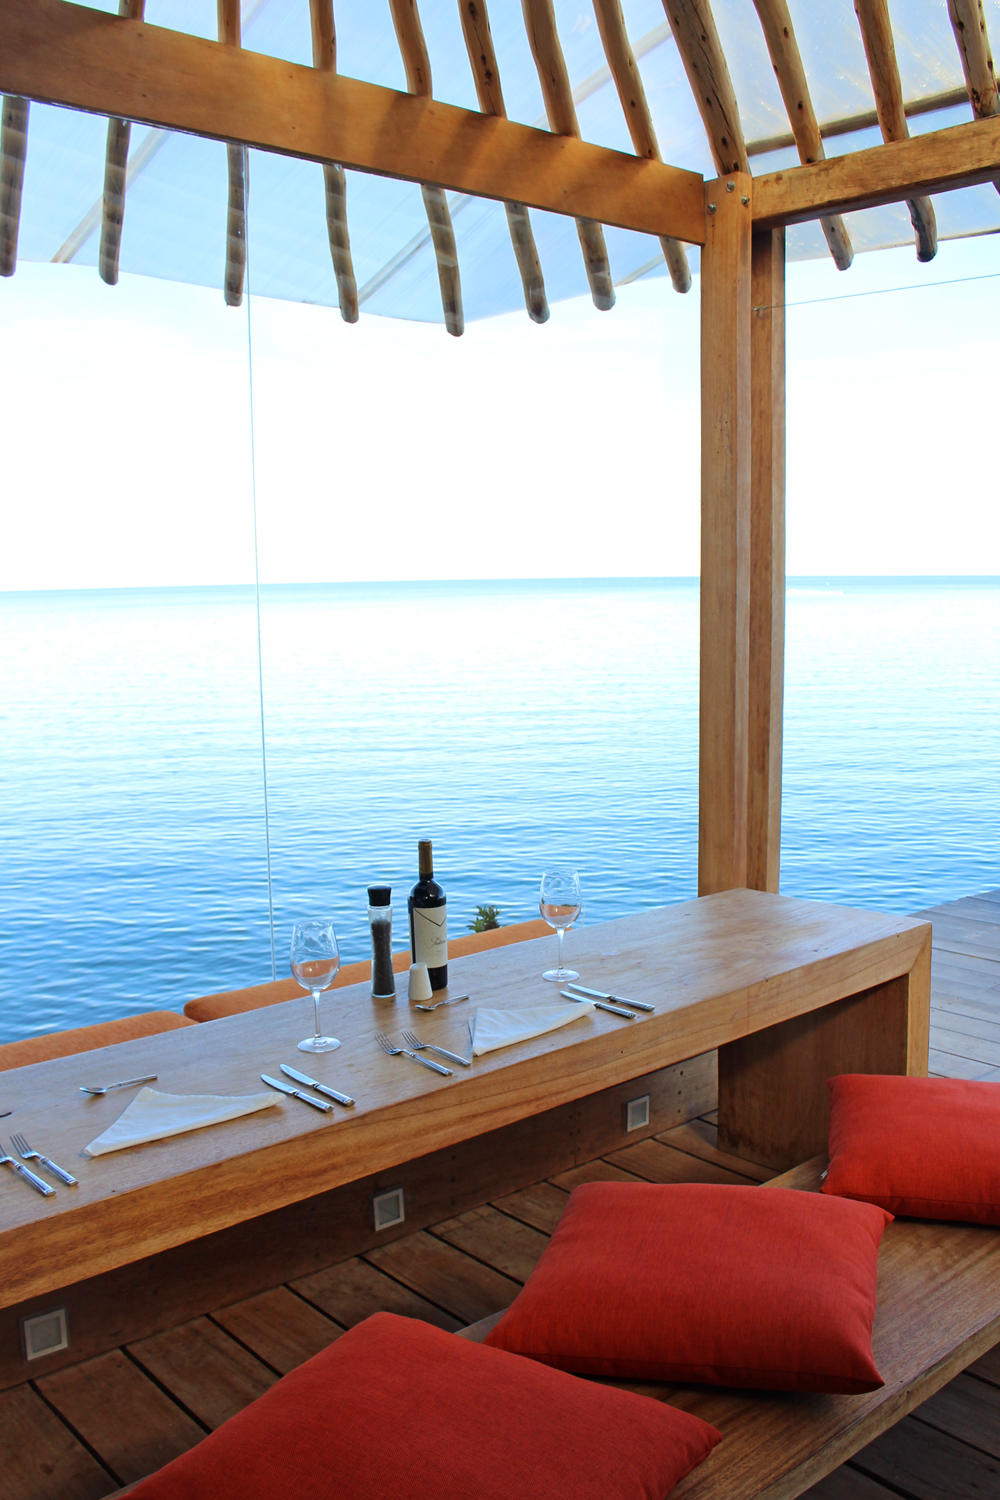 Amantica Lodge private balcony, Lake Titicaca, Peru - South America travel blog